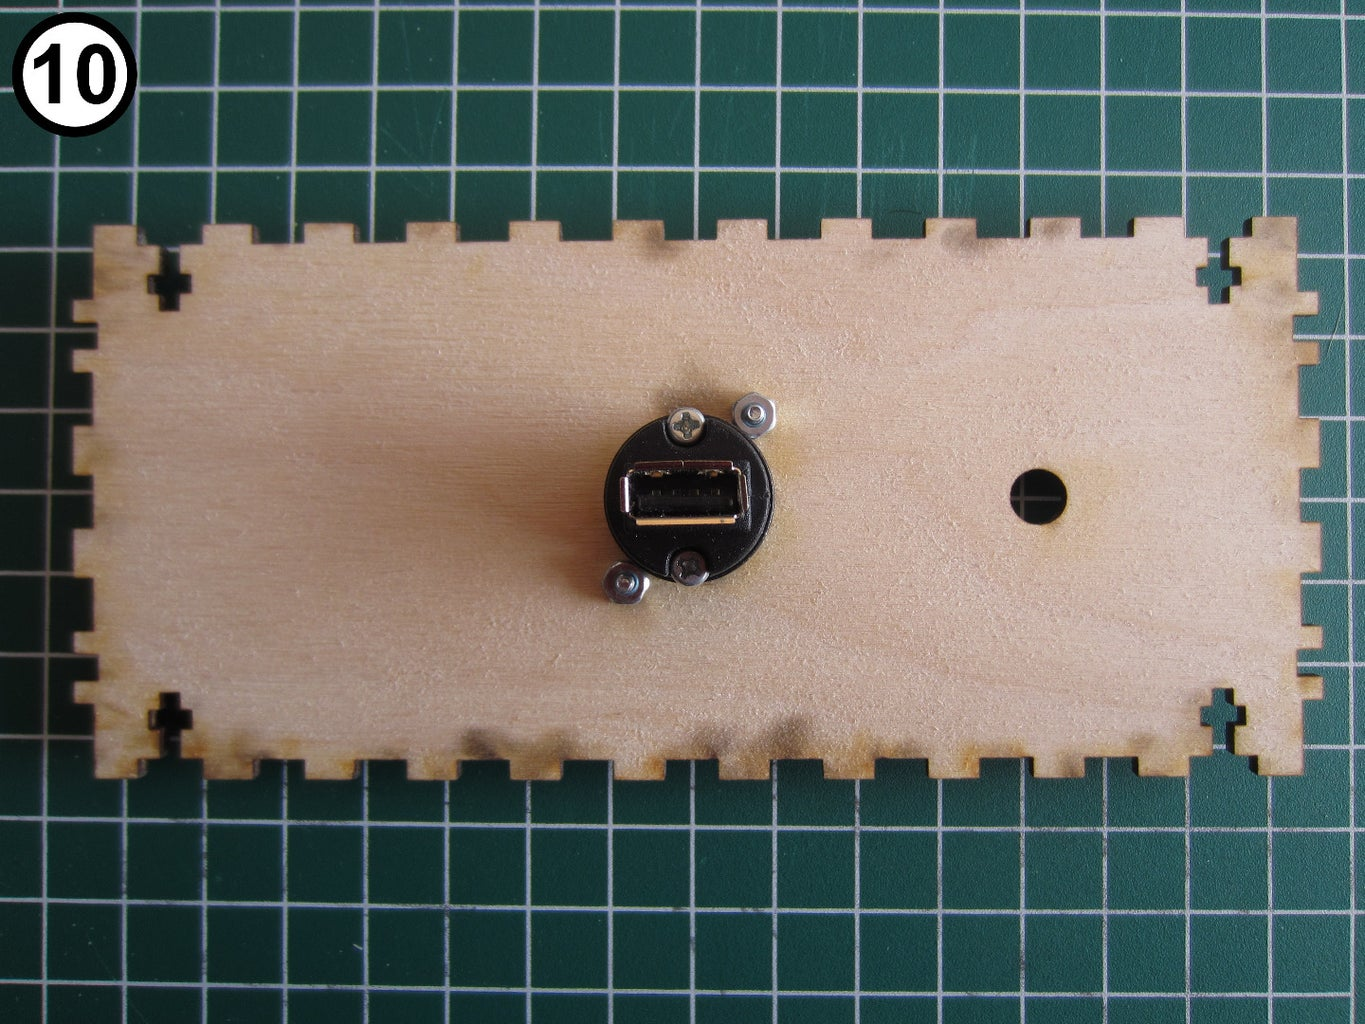 Prepare USB Power Connector and Attach It to the Case